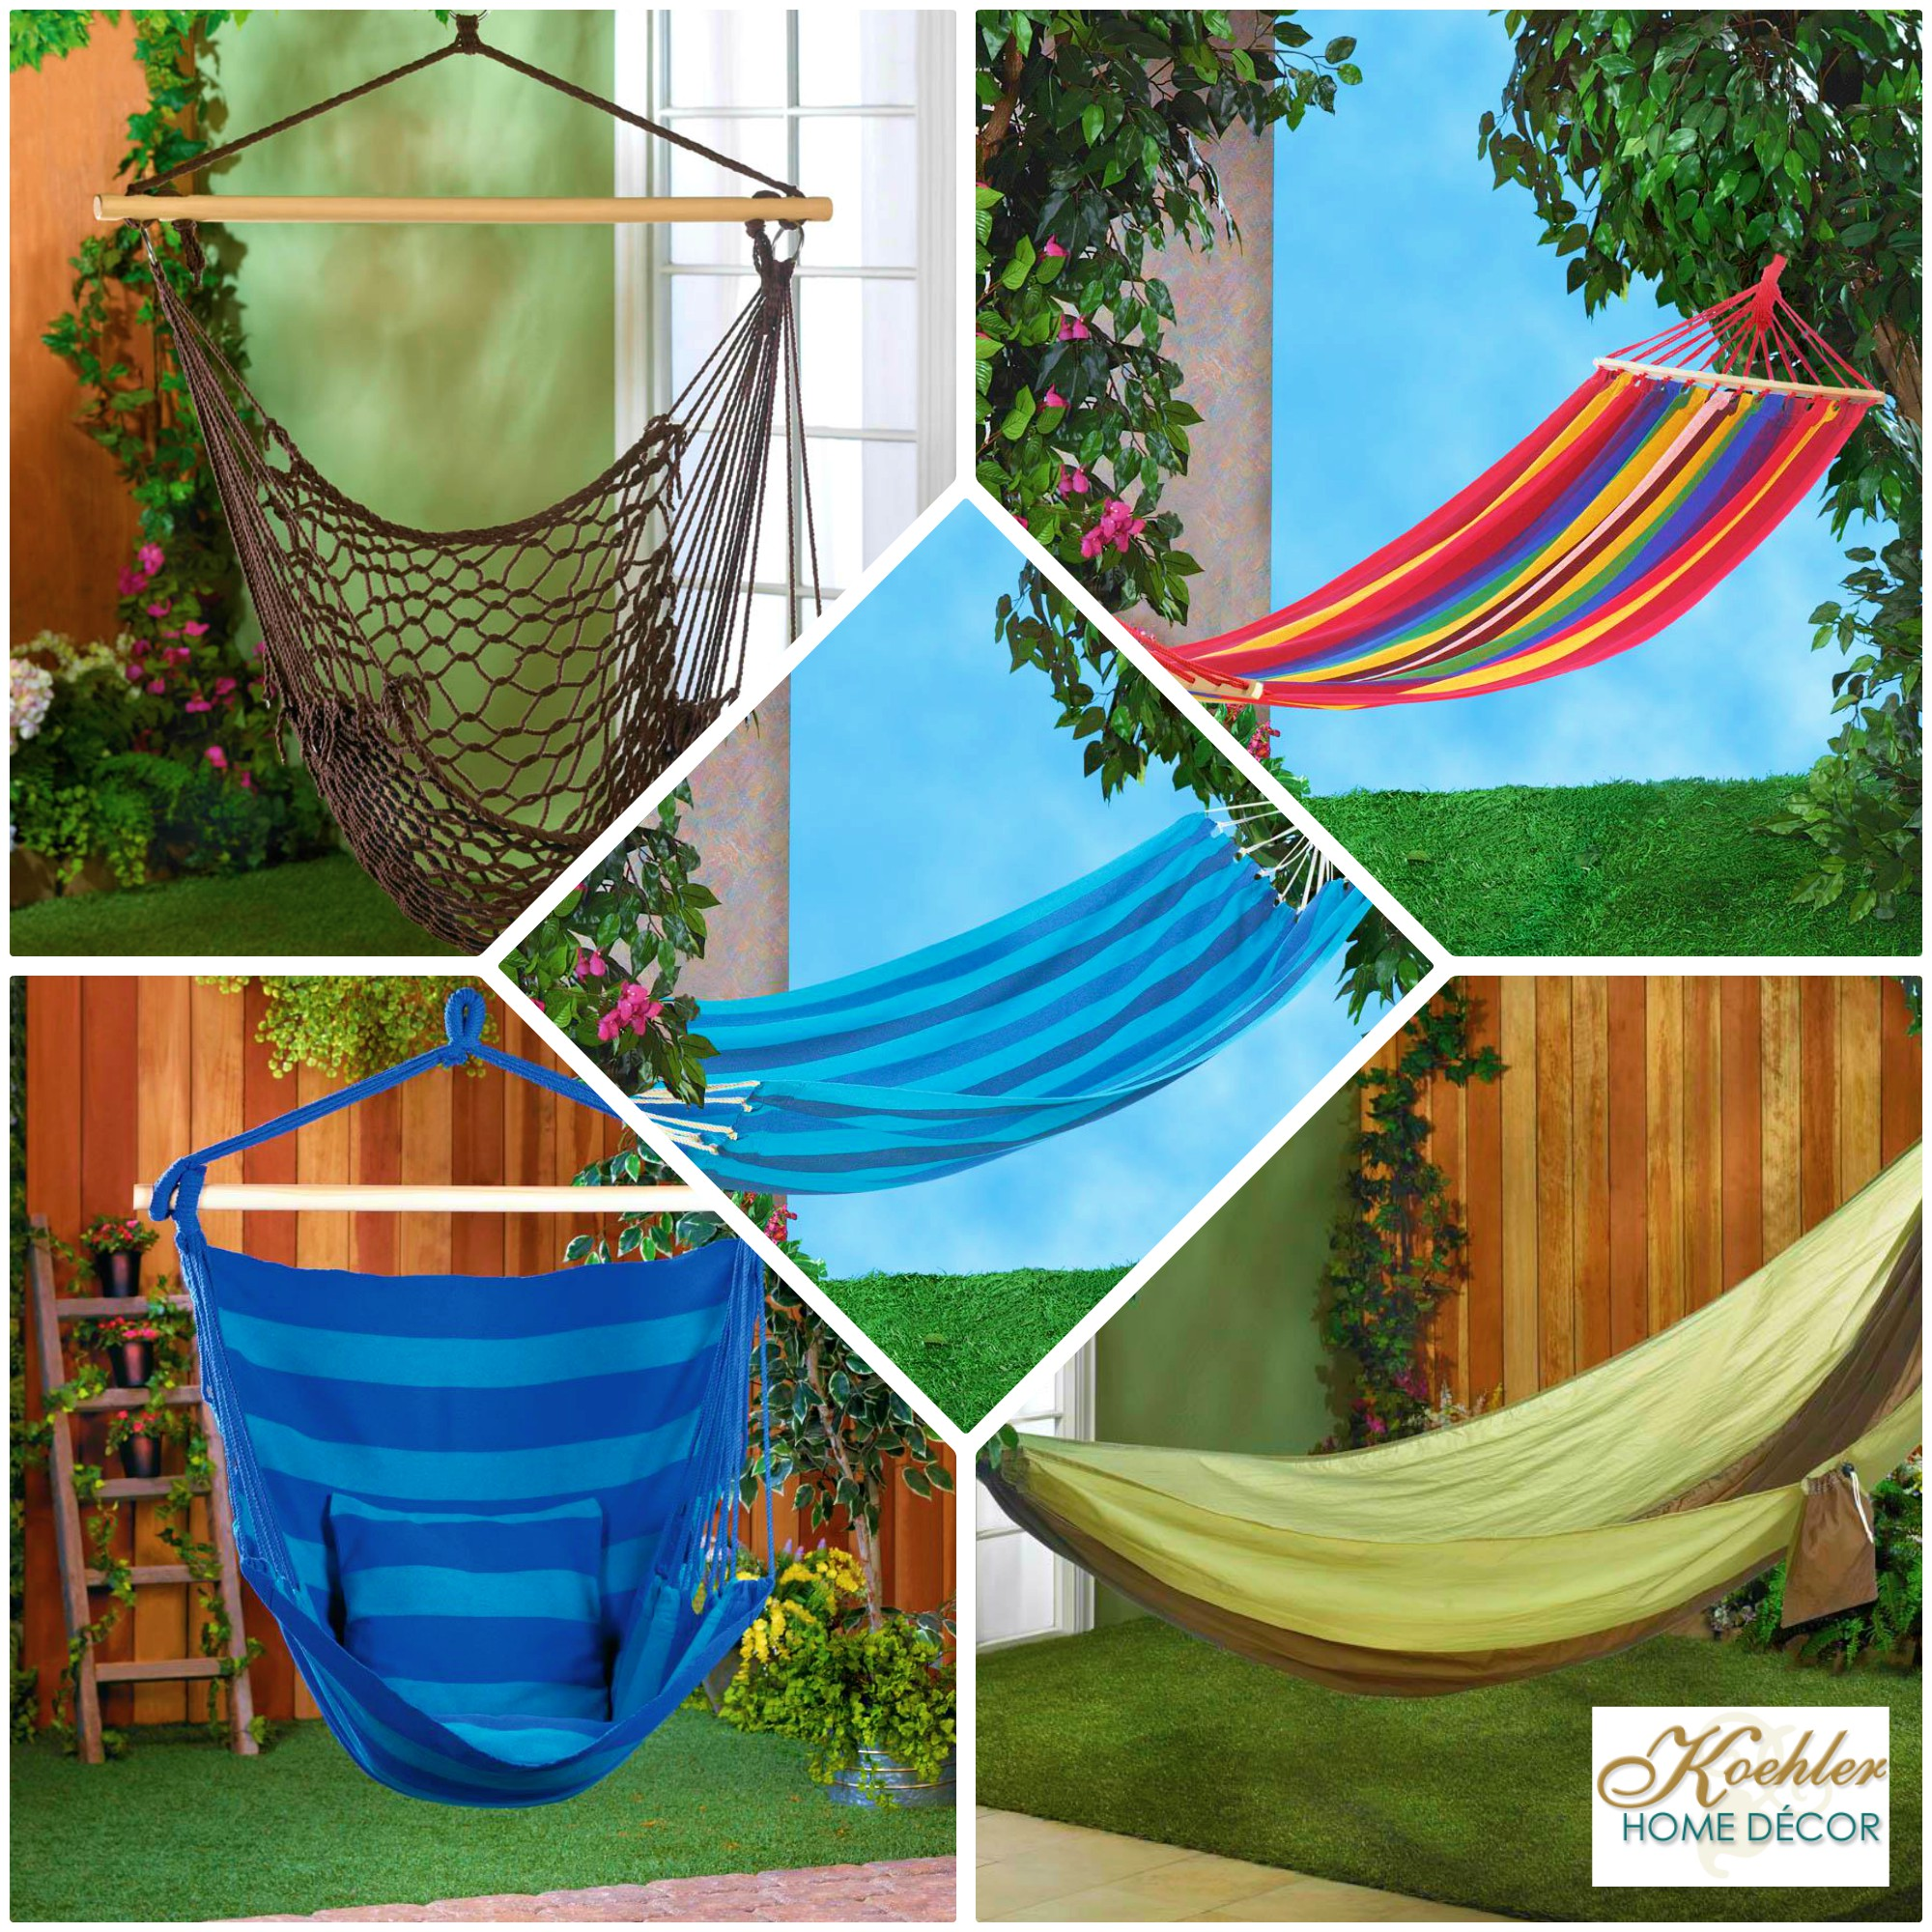 Wholesale Product Spotlight – Summer Hammocks Collection